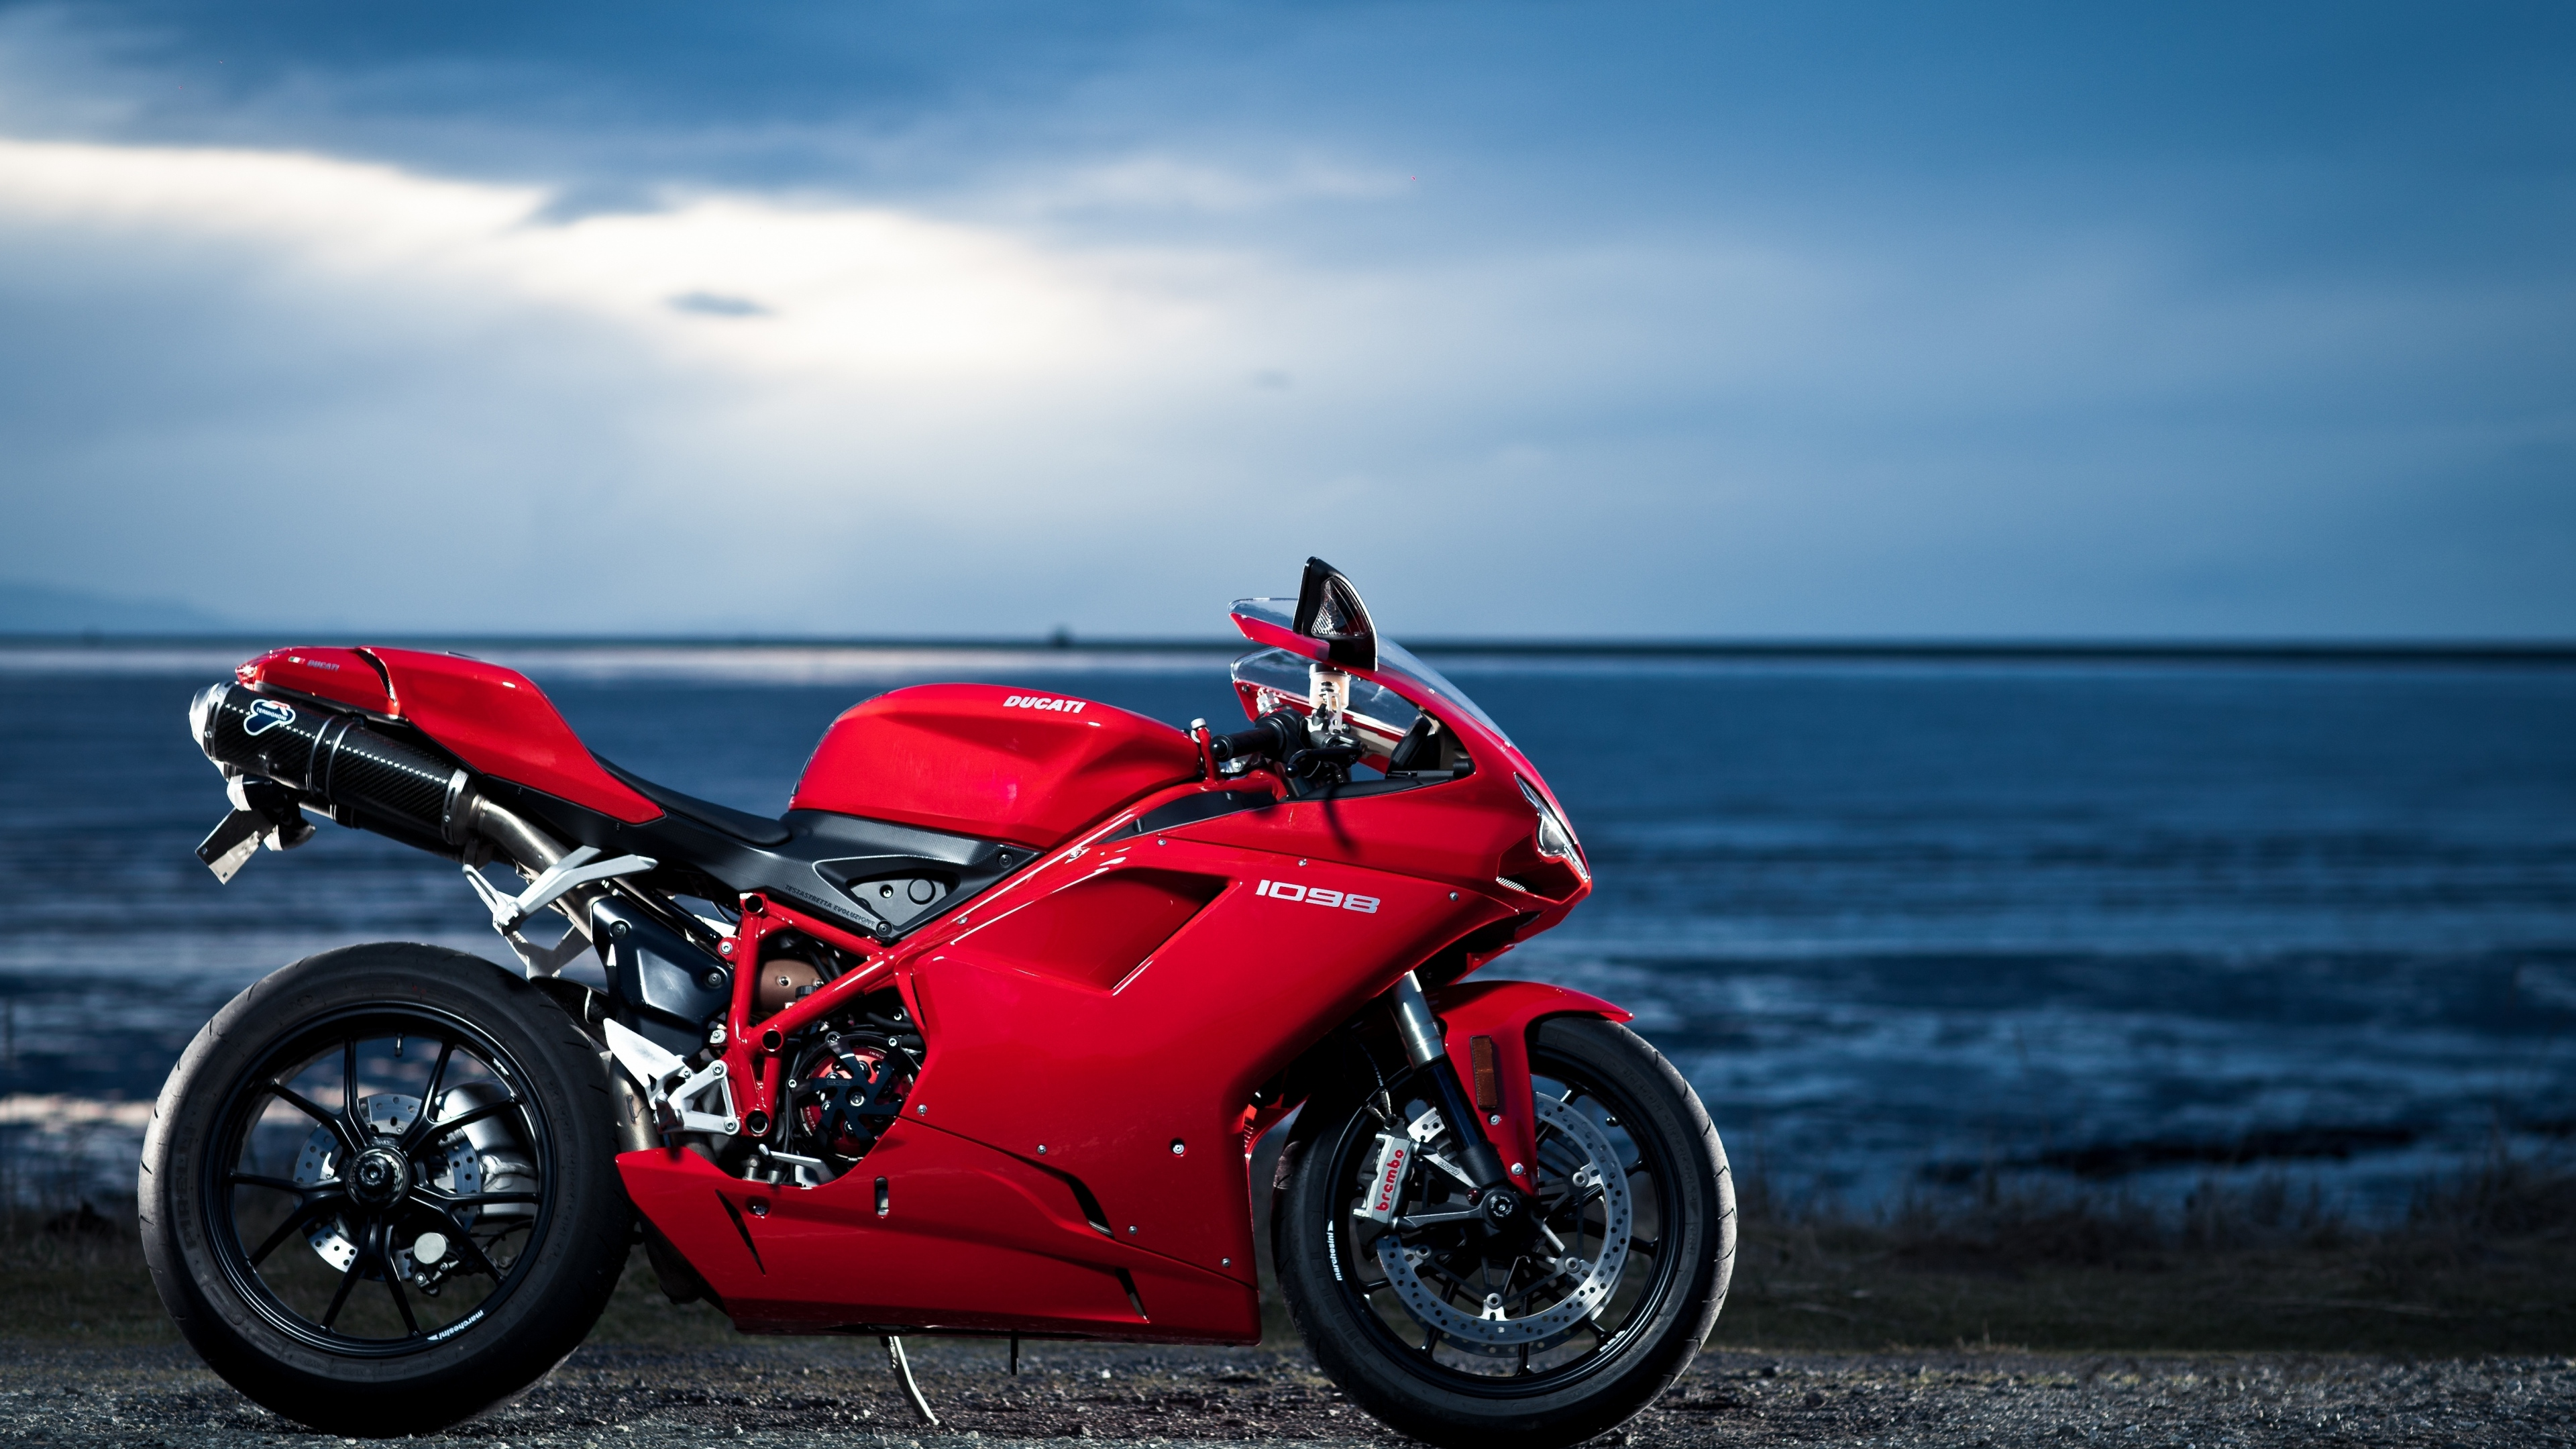 Ducati 1098 4K, HD Bikes, 4k Wallpapers, Images, Backgrounds, Photos